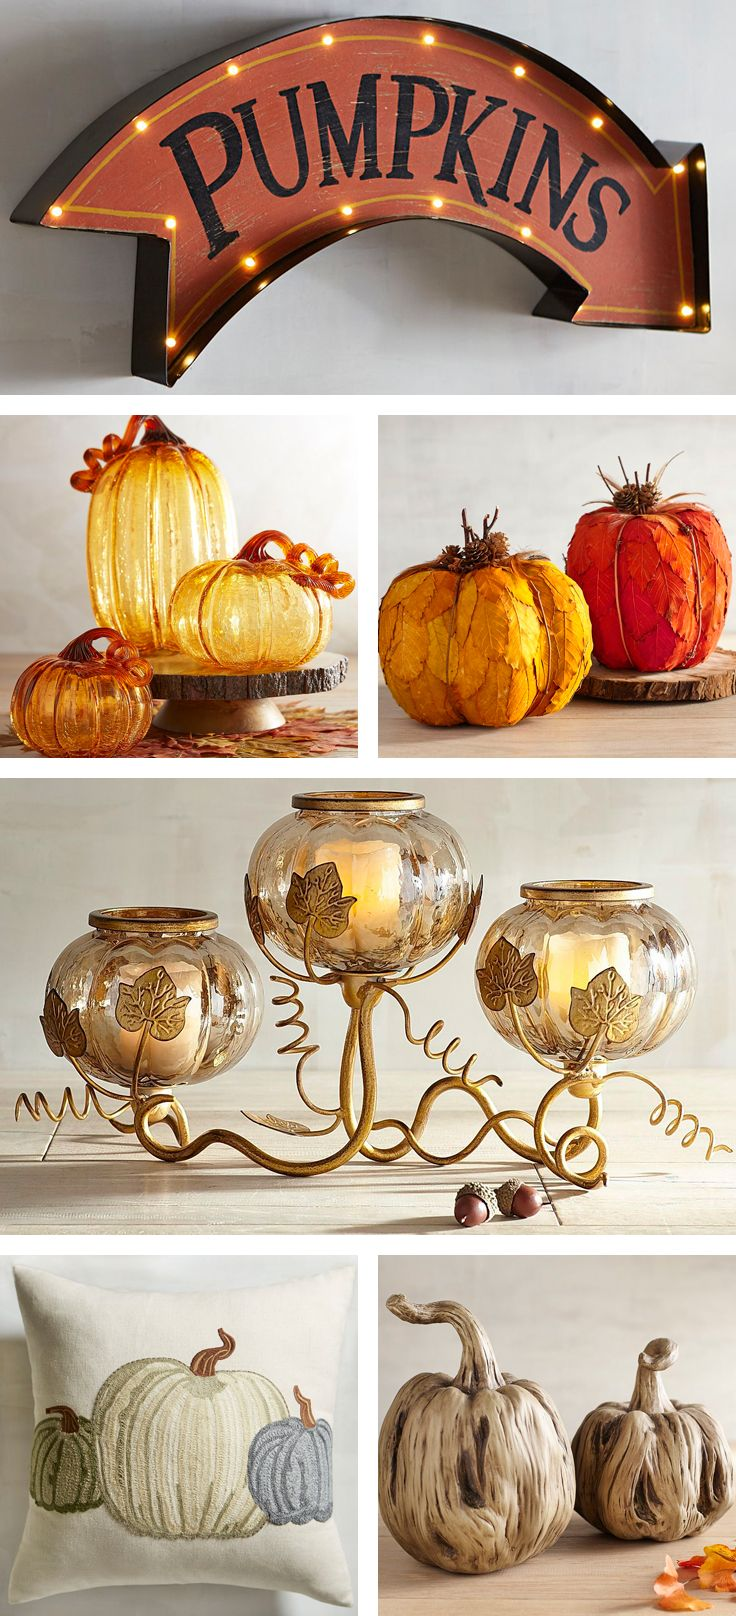 Celebrate the season of abundance by displaying Pier 1 decorative pumpkins everywhere this year. Choose from art glass, metallic, feathered, lace and LED, and make our pumpkins the stars of your most memorable fall display. Take your pick—there are so many to choose from.